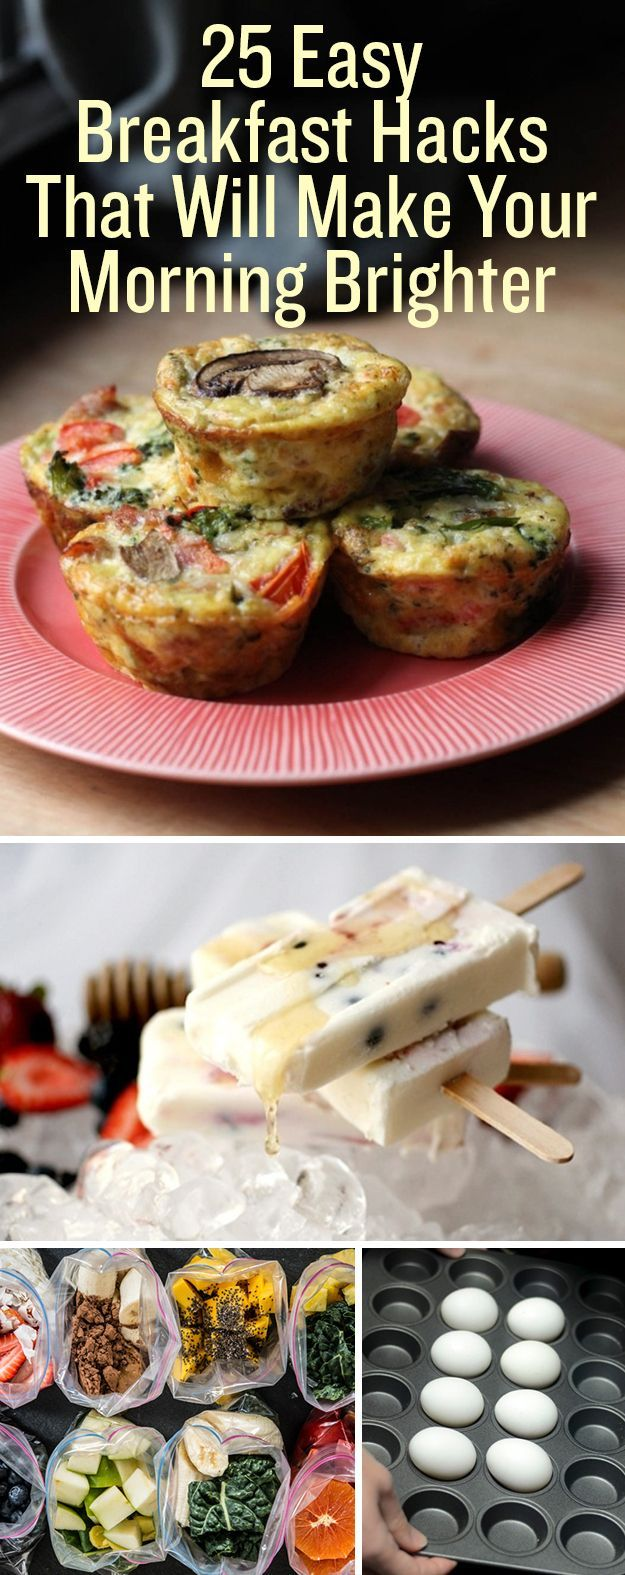 25 Easy Breakfast Hacks To Make Your Morning Brighter.